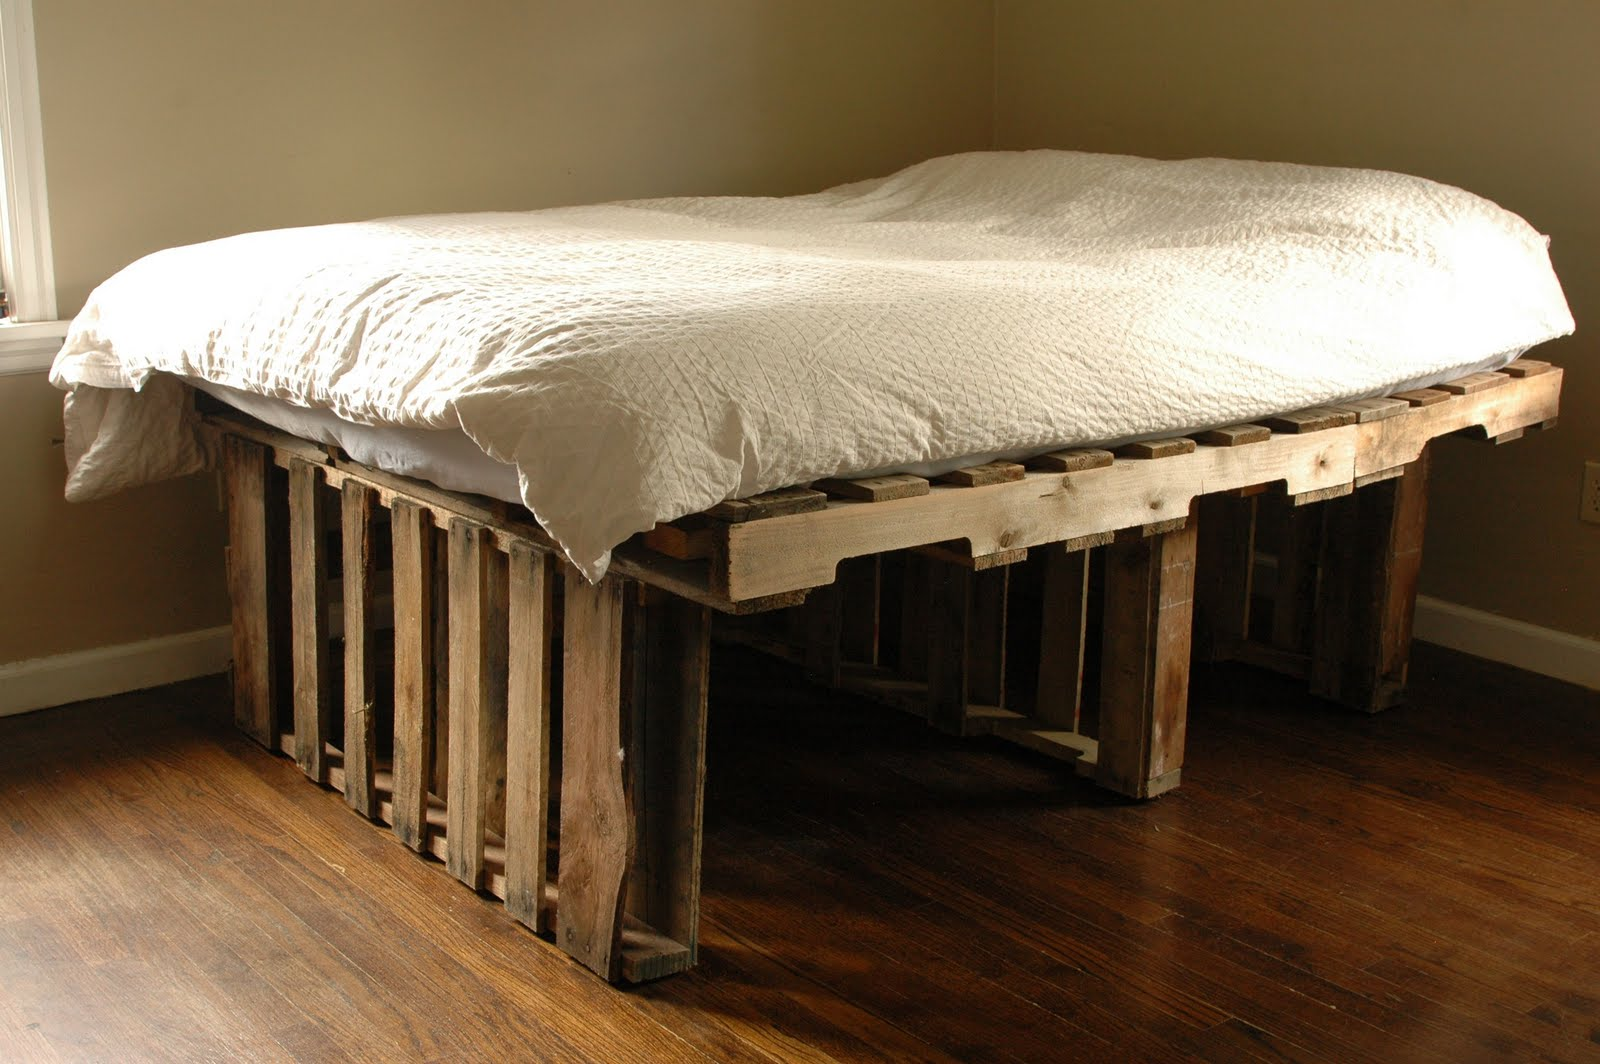 Make A Platform Bed From Pallets | www.woodworking.bofusfocus.com